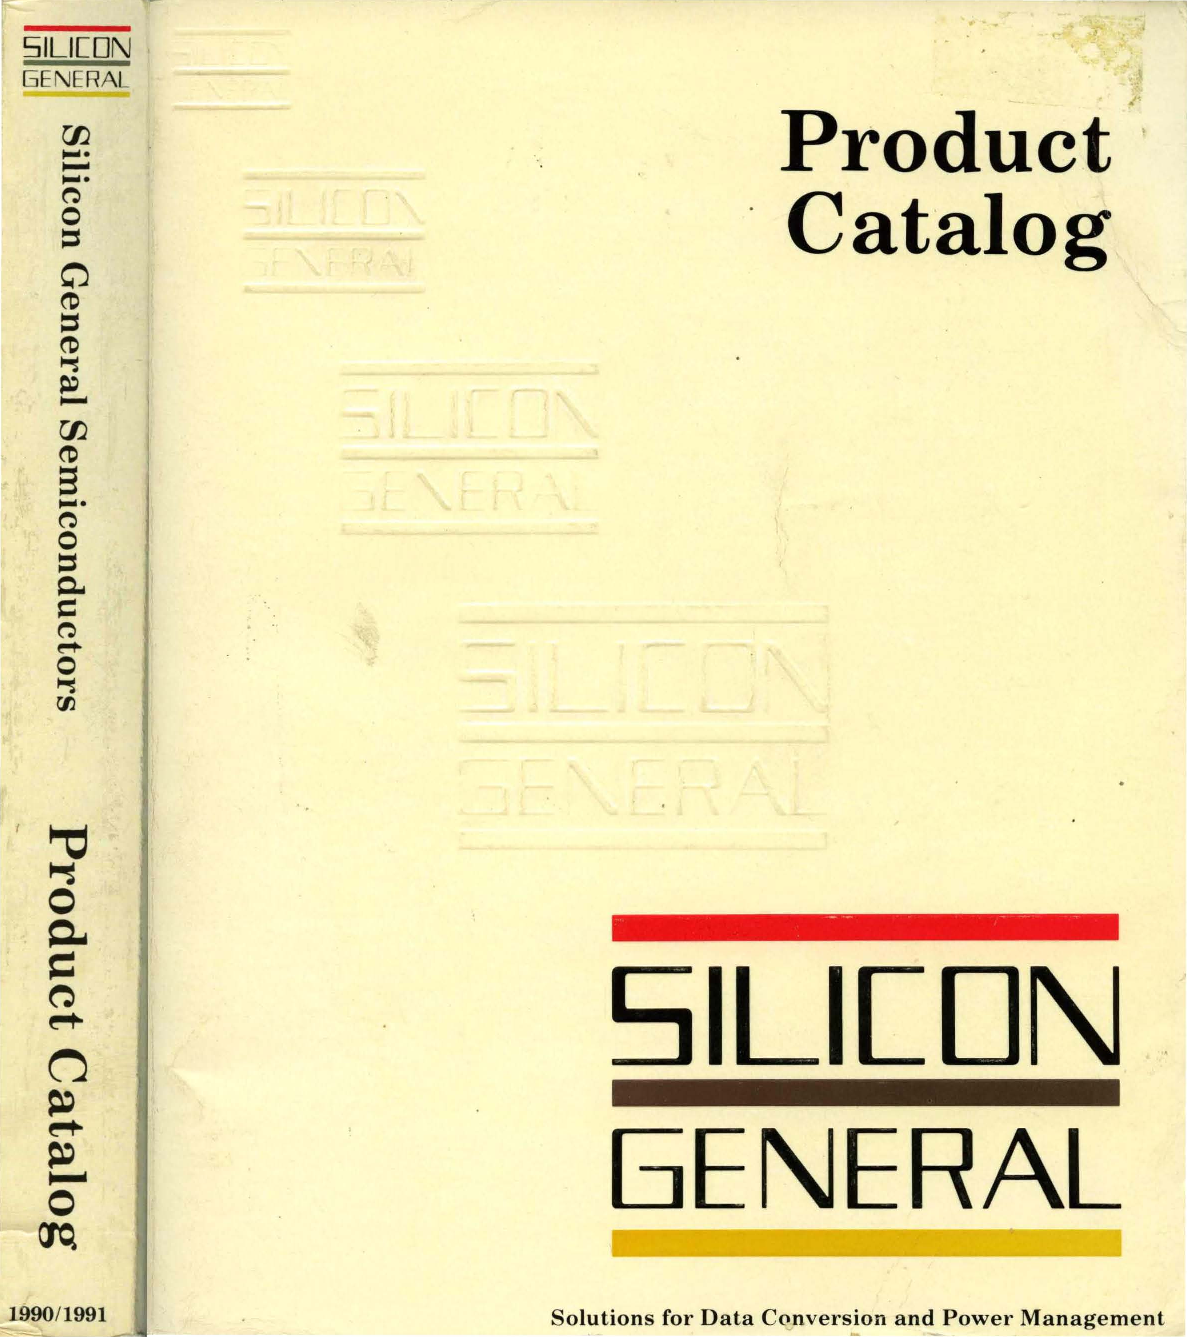 1990 Silicon General Product Catalog Linear Regulated Dual Polarity Power Supply By Lm317 And Lm337